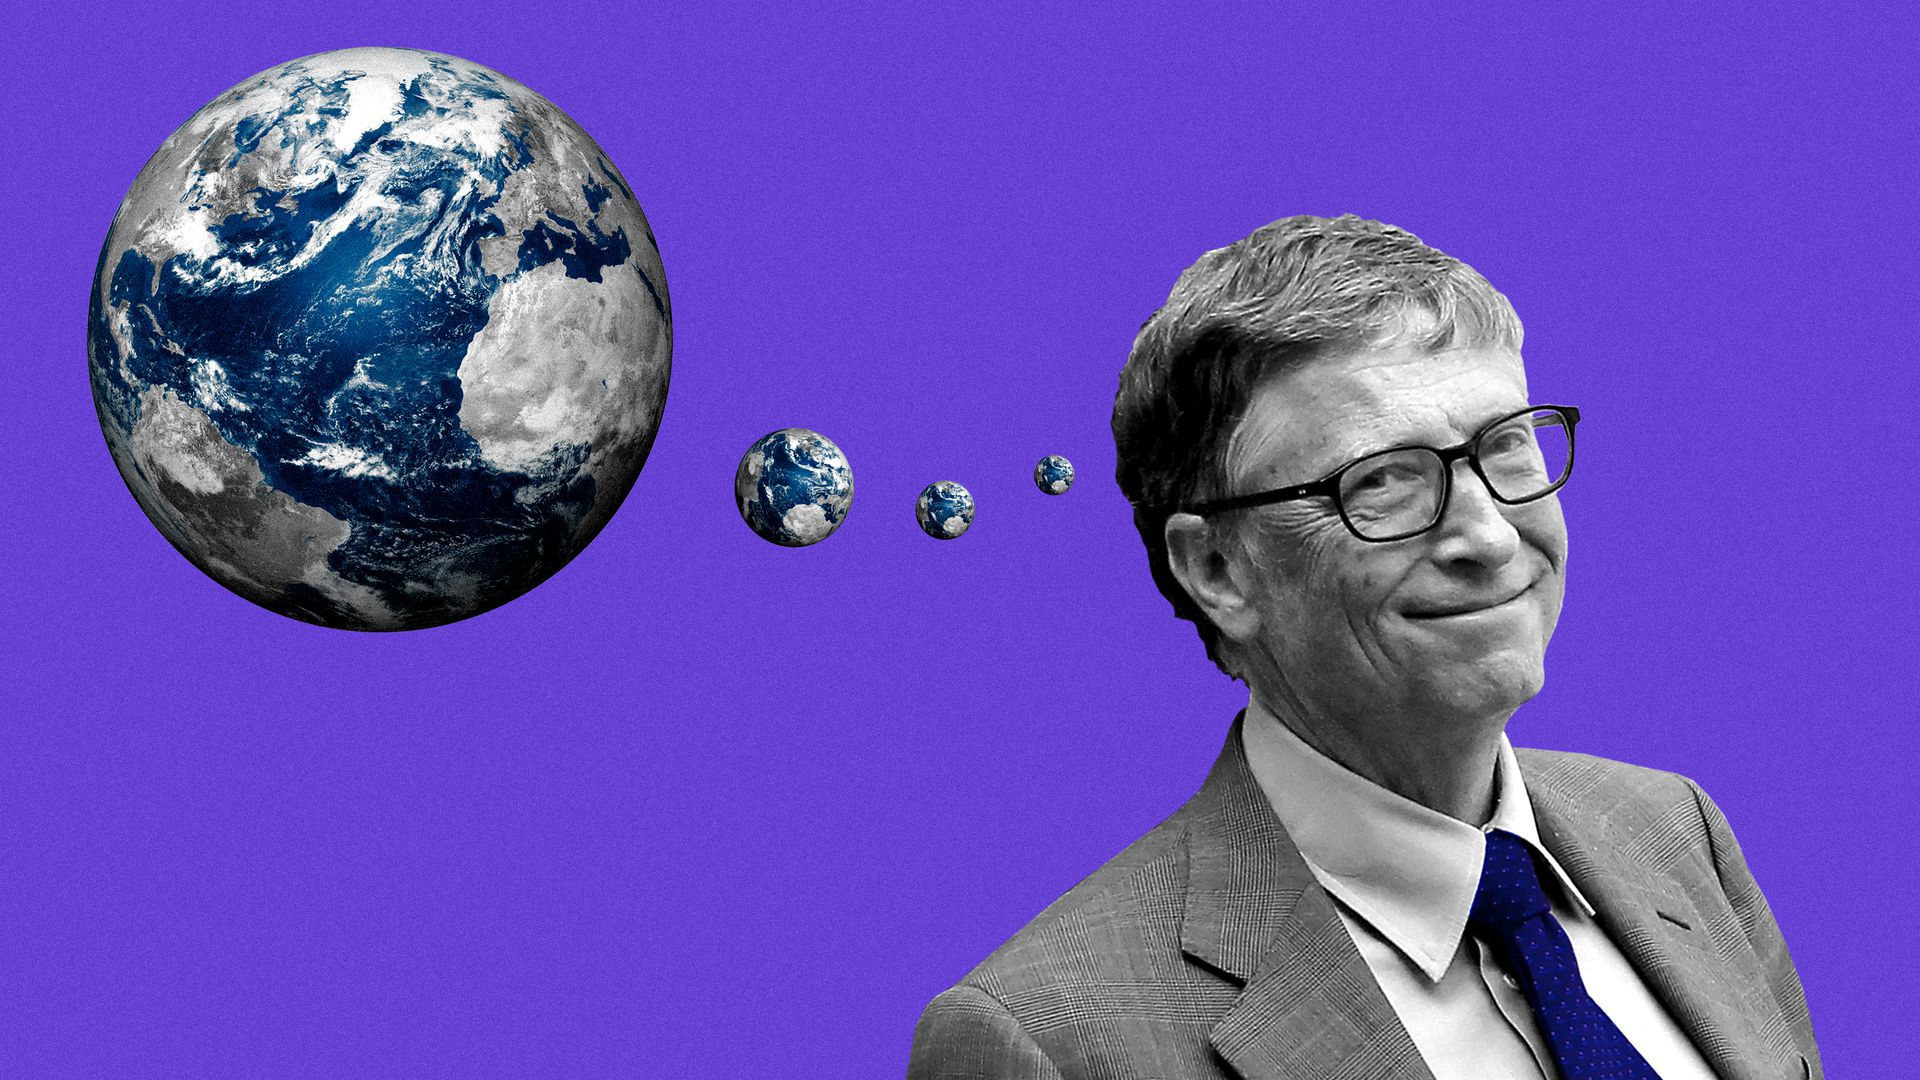 An illustration of Bill Gates with thought bubbles that are earths